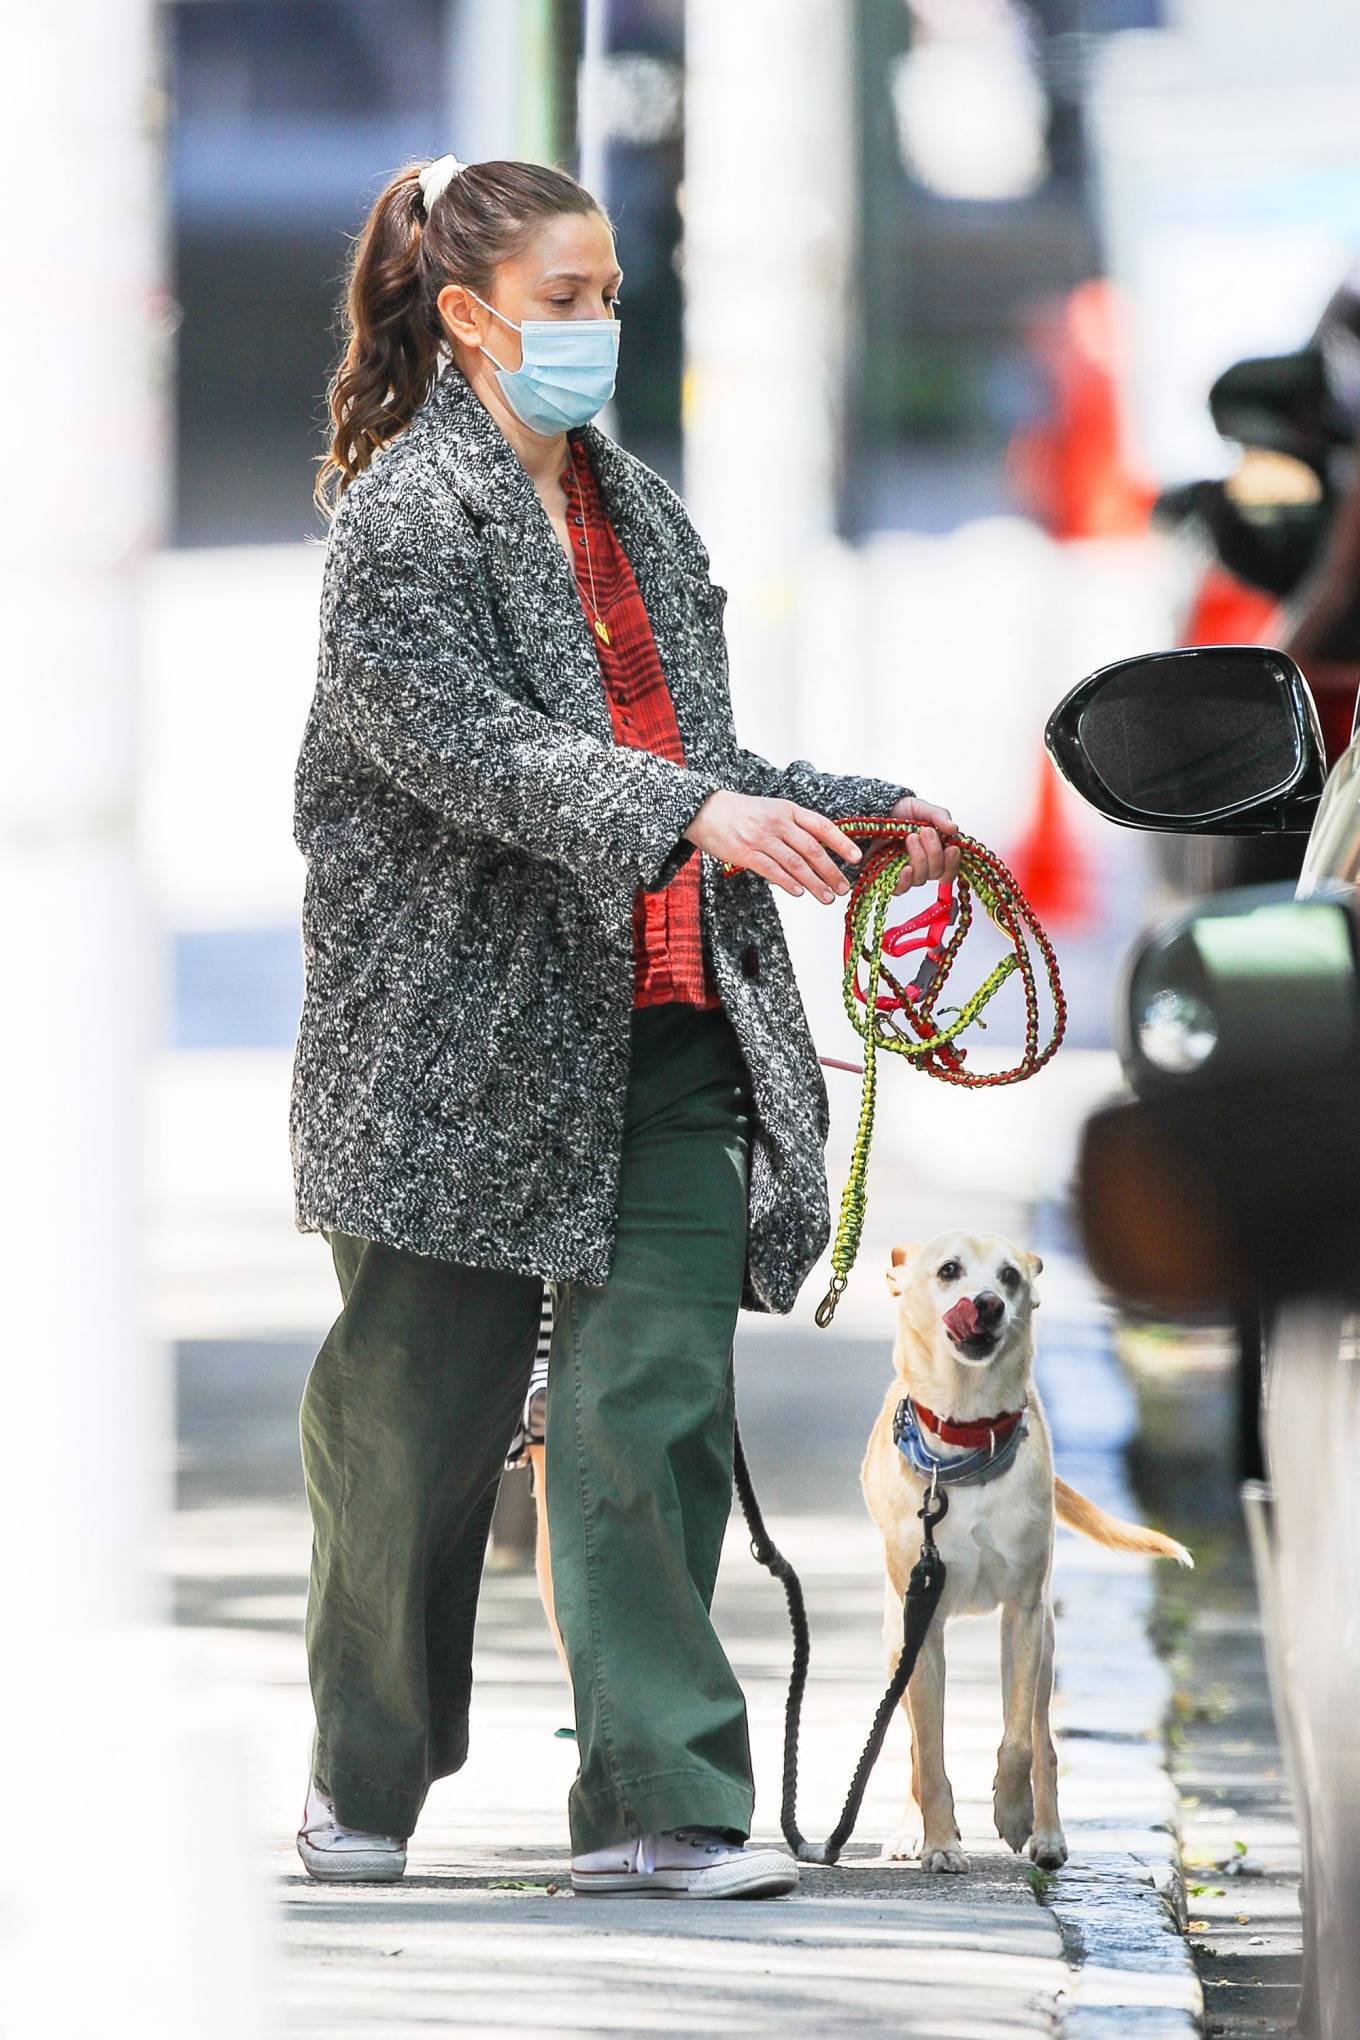 Drew Barrymore 2021 : Drew Barrymore – Seen with her dog while out and about in New York-04